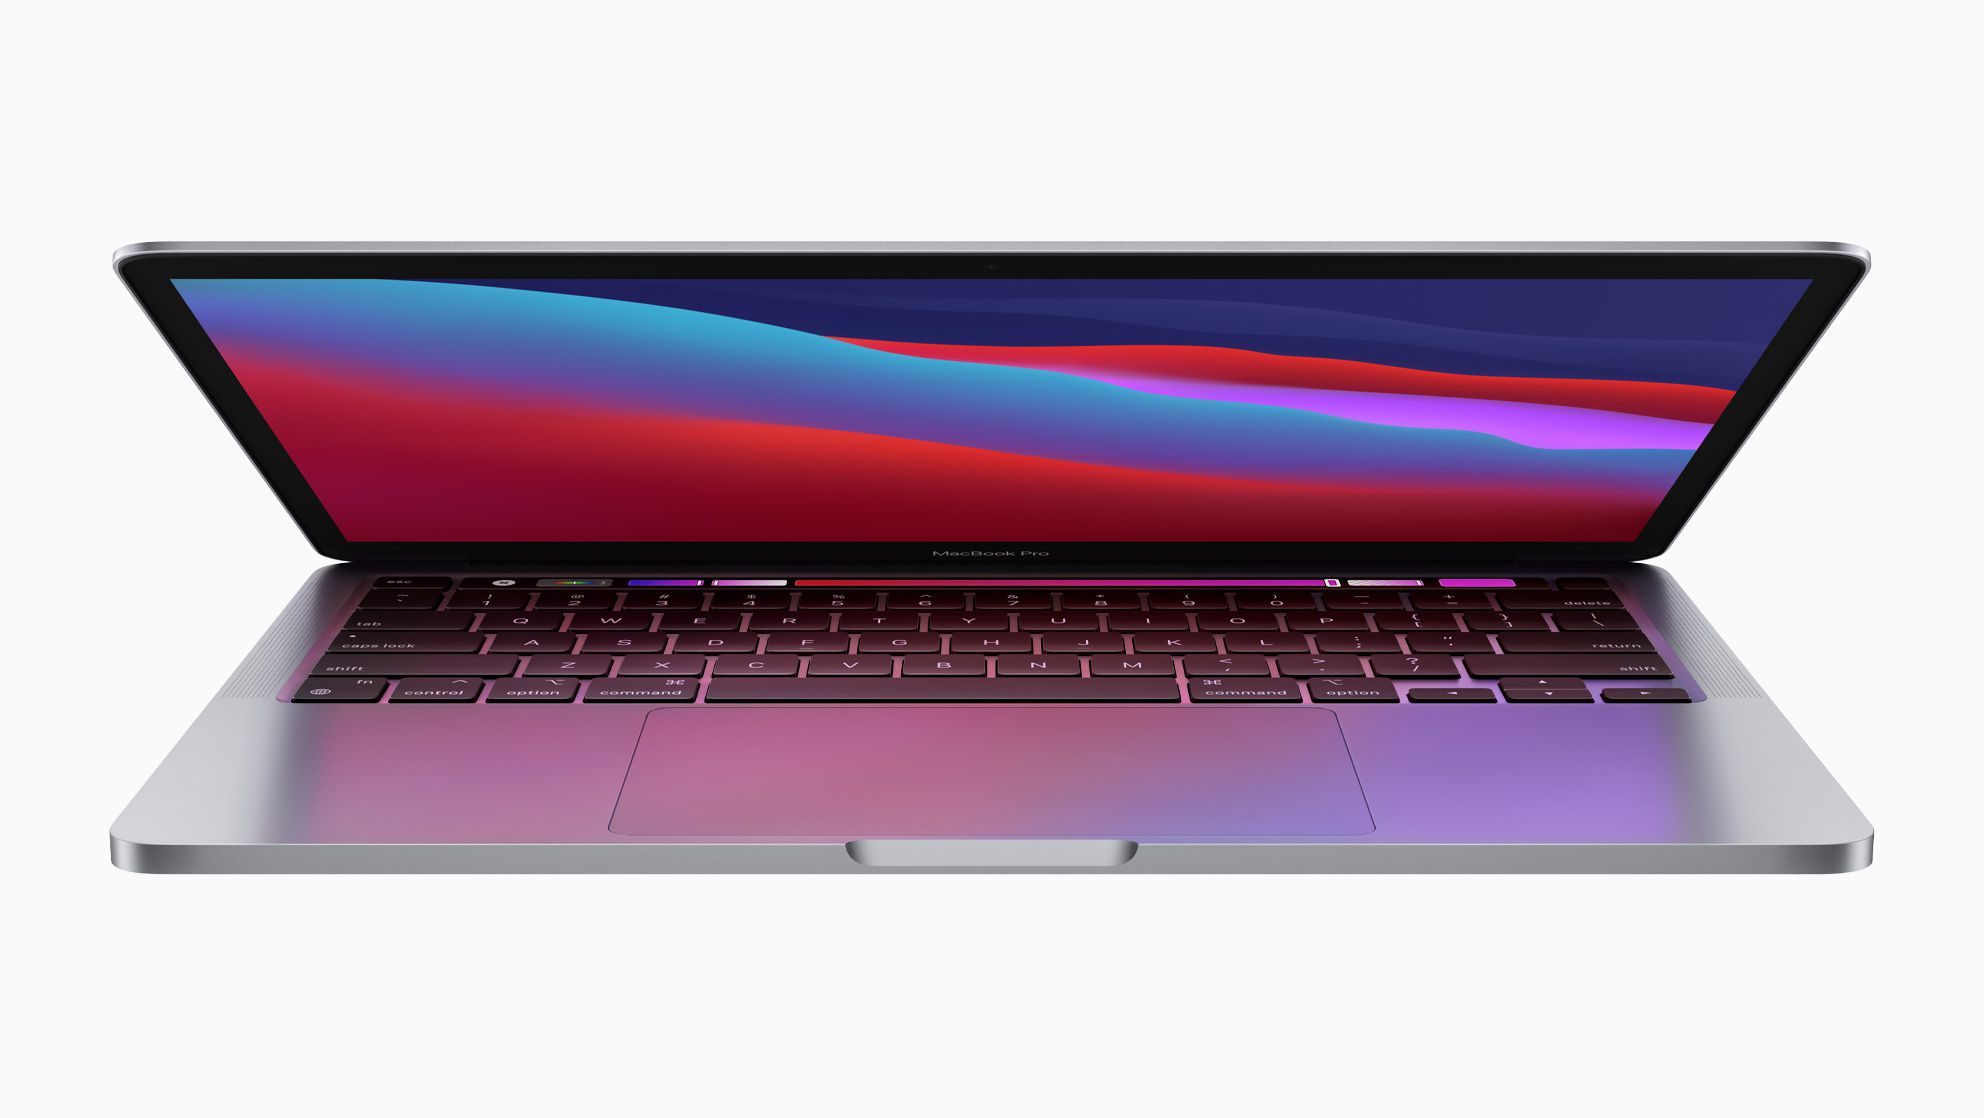 Apple's new M1-powered MacBook Air partially open